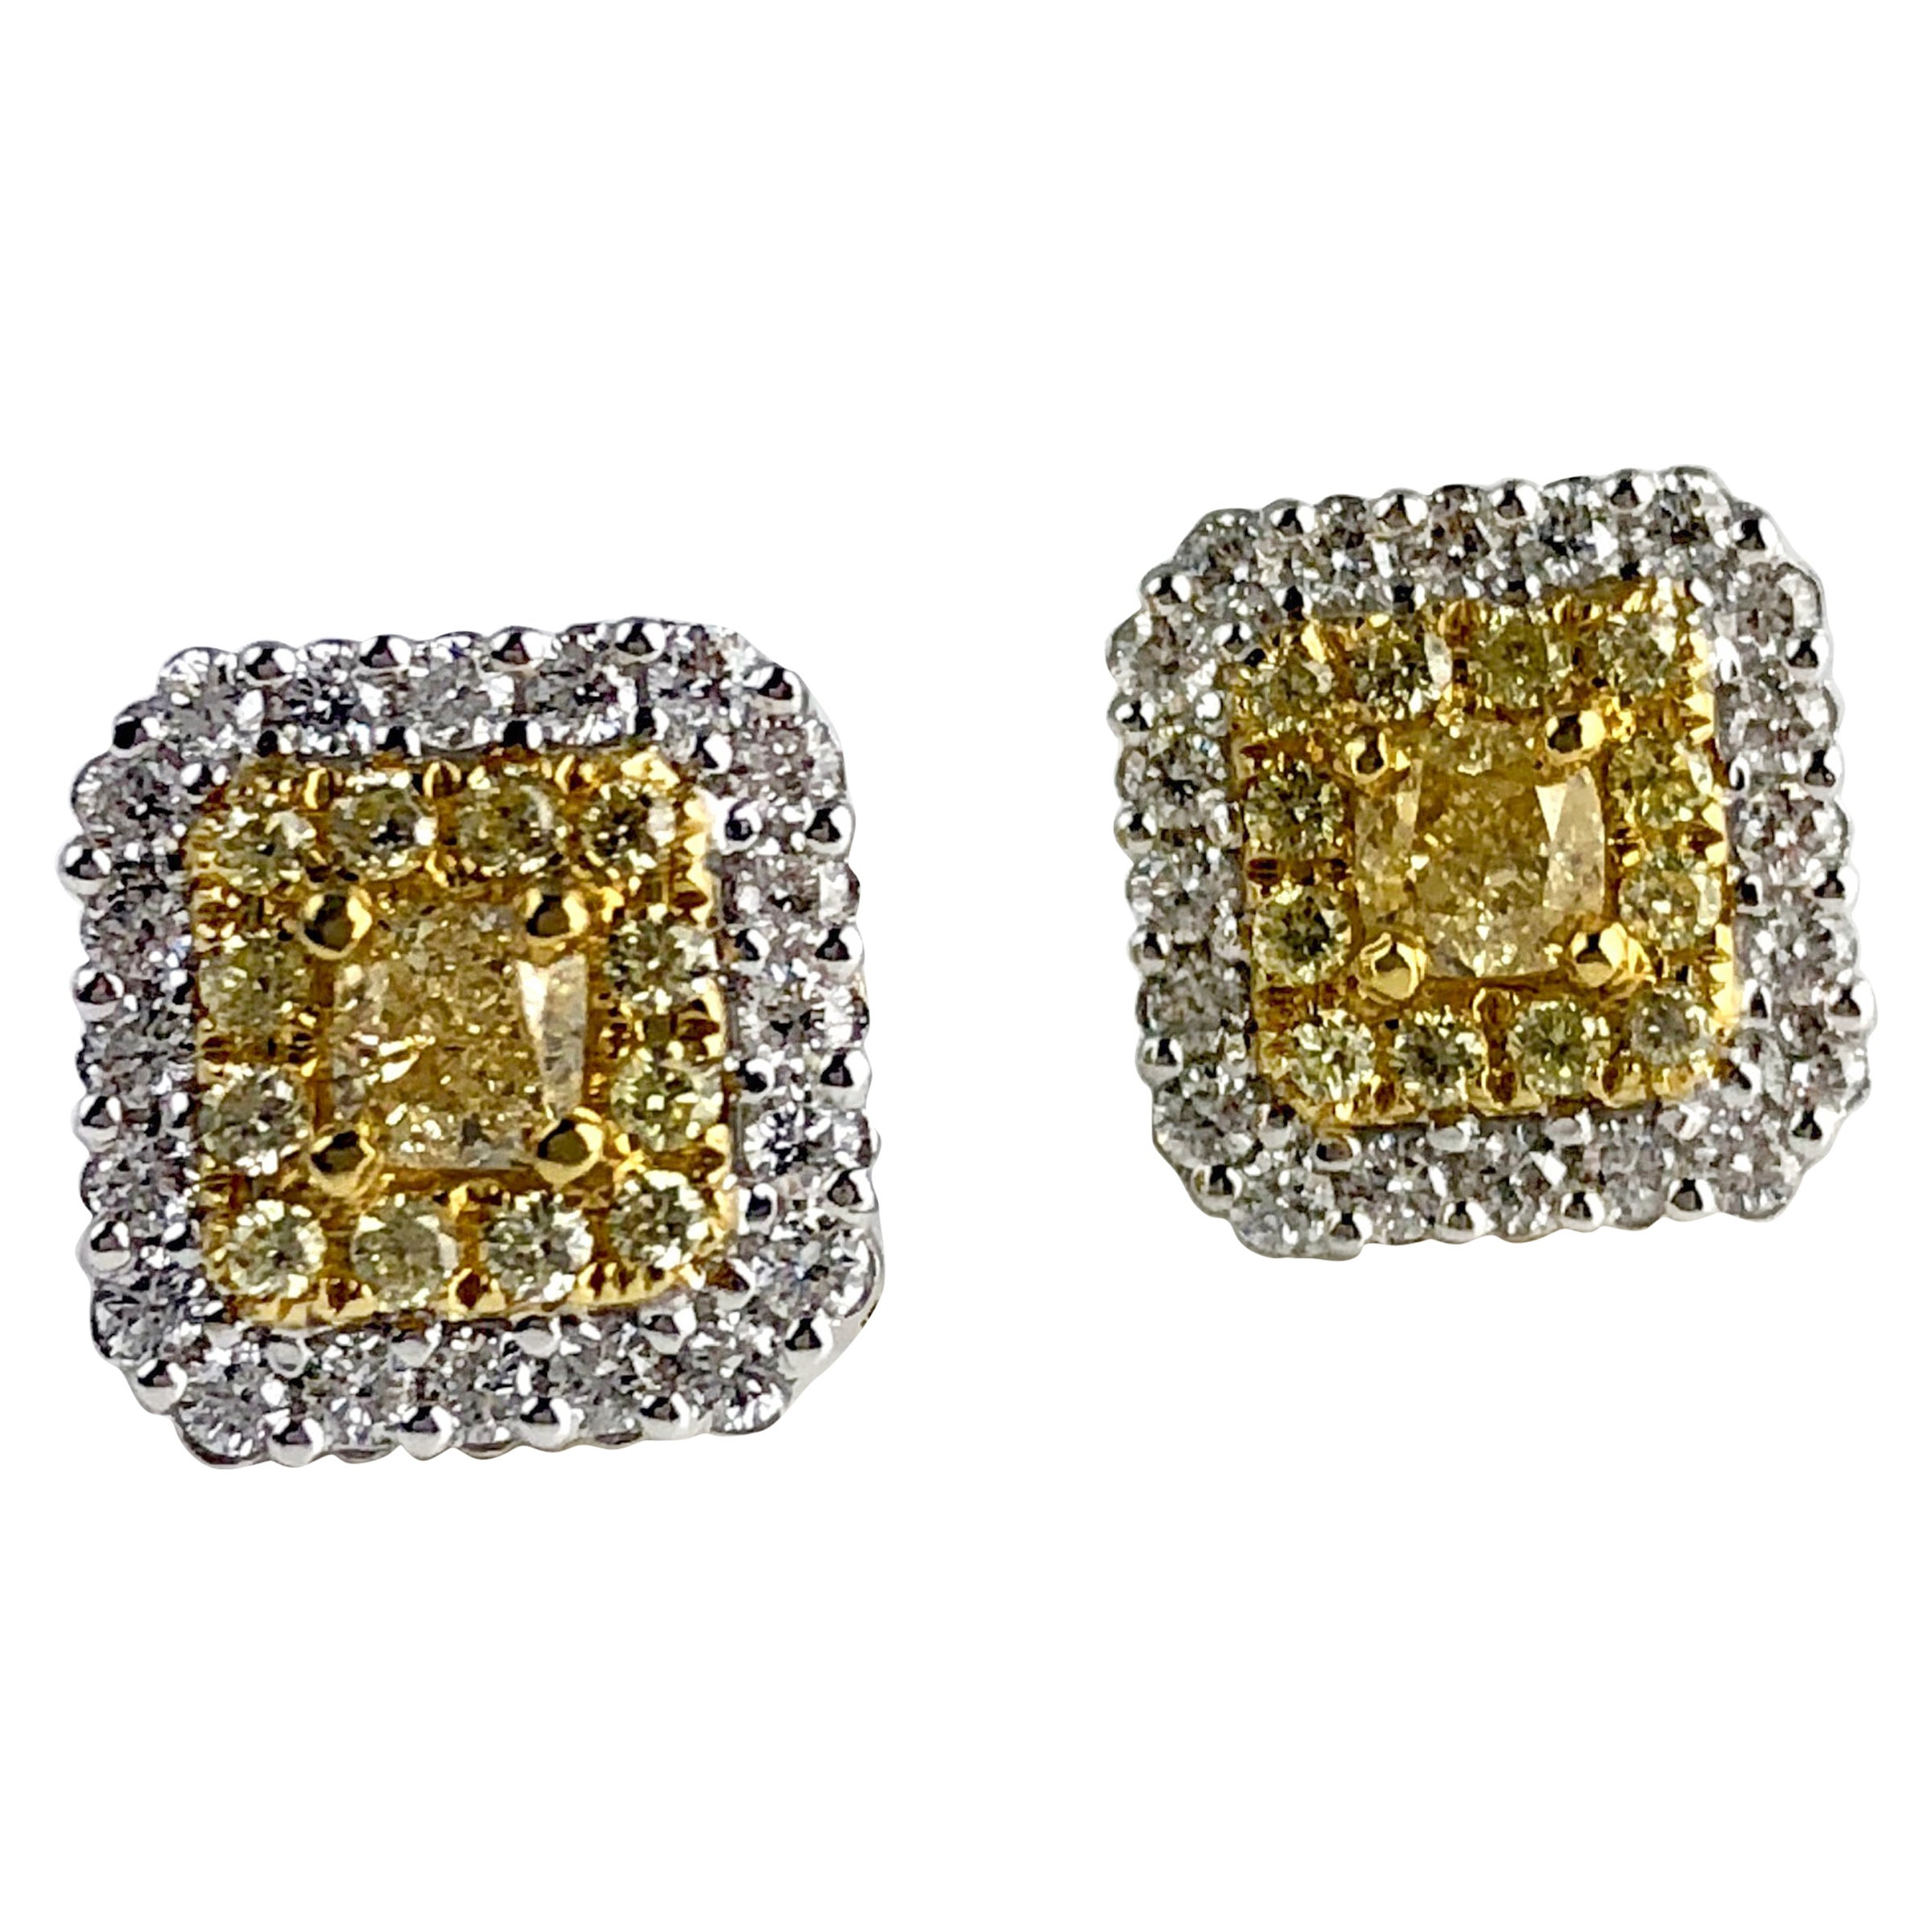 4f760f1a8a436 1.01 Carat Yellow Diamond Double Halo Stud Earrings in 18k White and Yellow  Gold